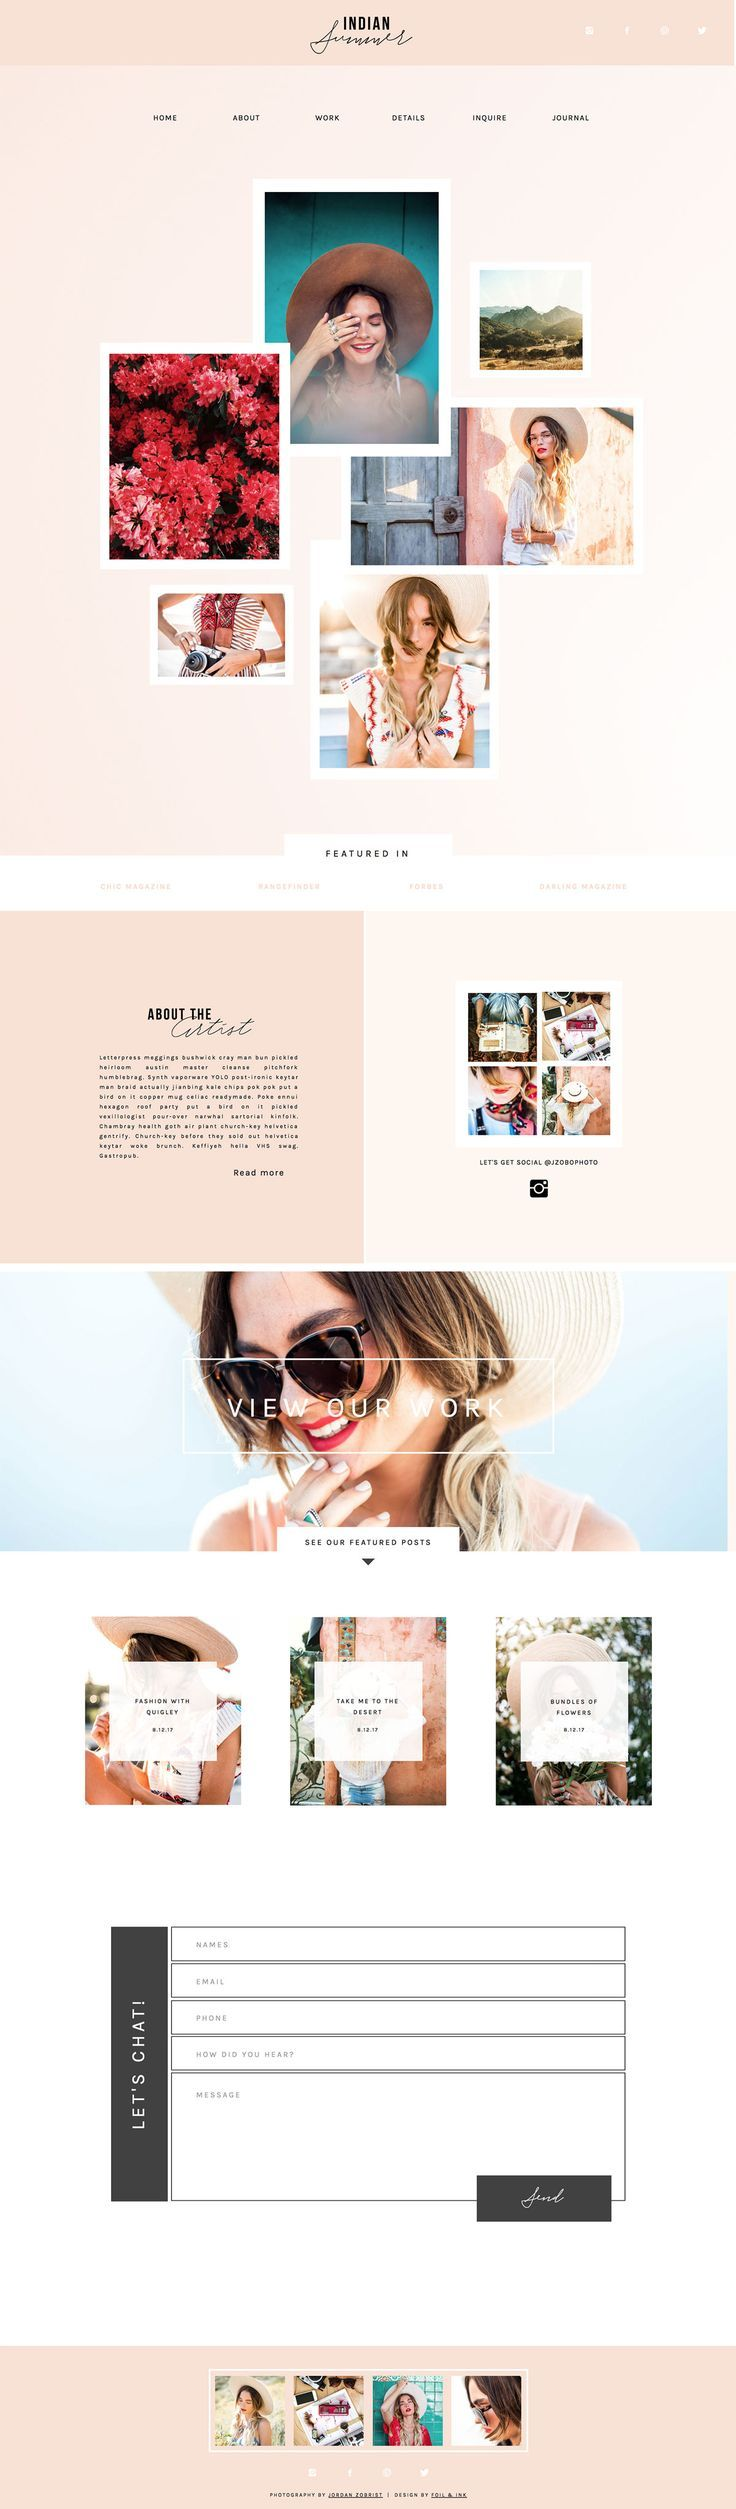 Showit 5 Premium & Free Photography Website Templates ...